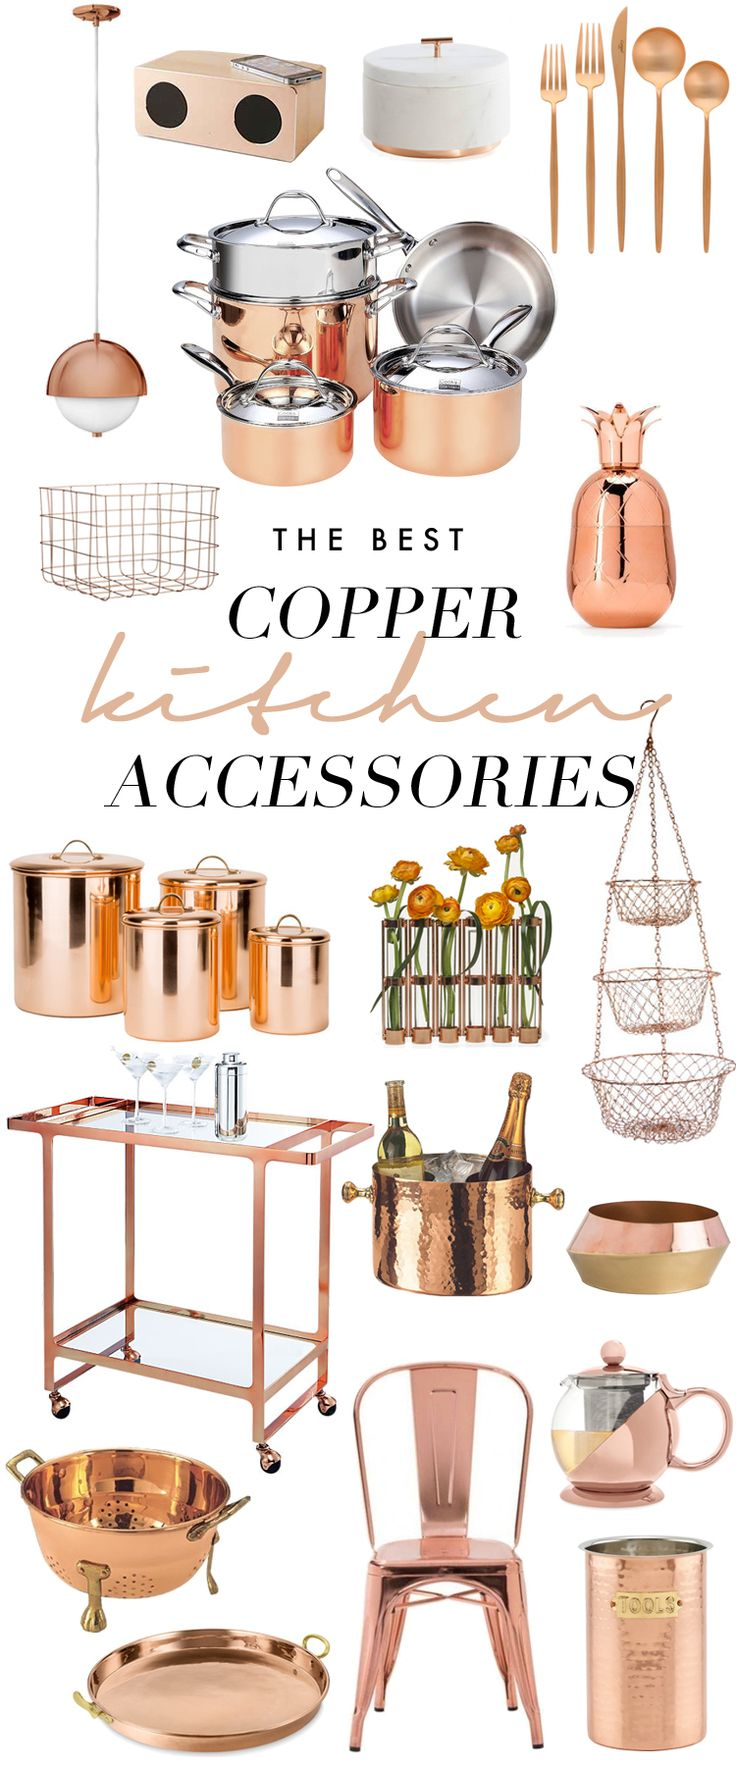 Farmhouse Decorating Ideas. The Best Copper Kitchen Accessories: http://www.sarahsarna.com/copper-kitchen-accents/